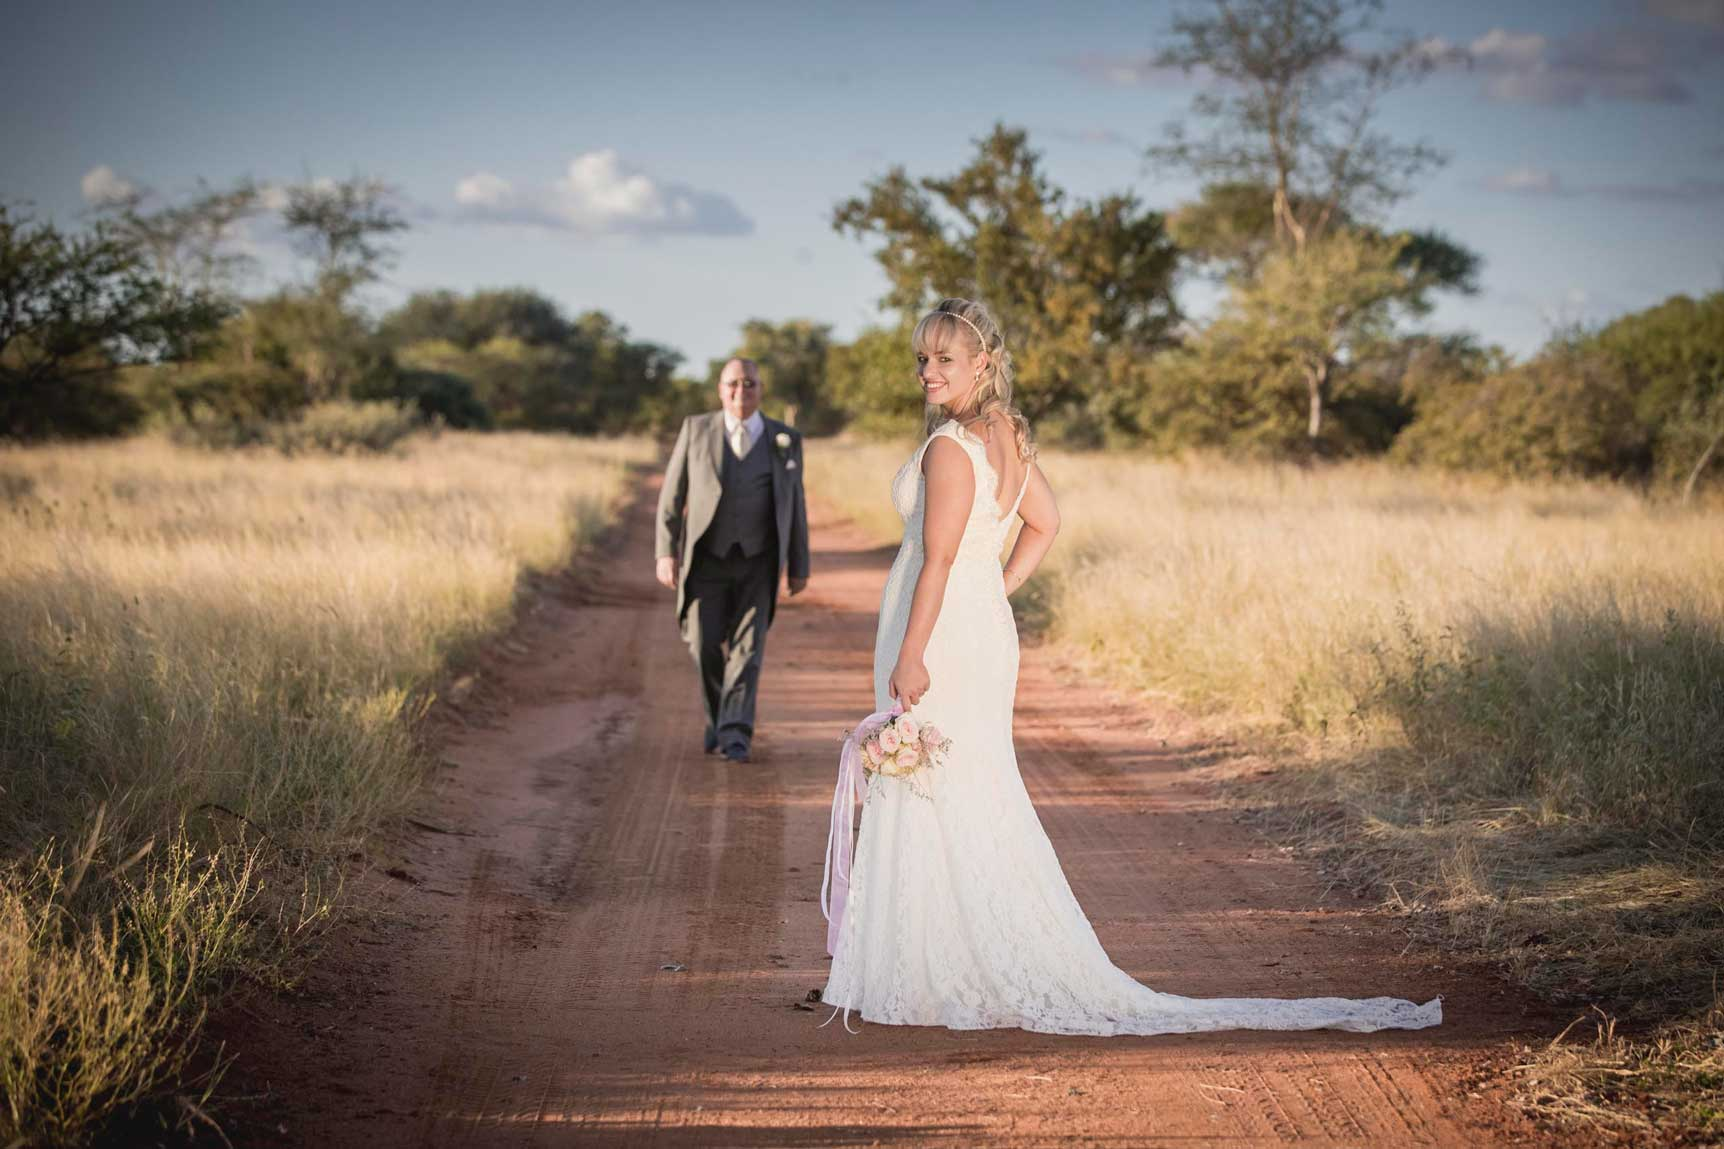 ANTH0980 - Safari Wedding Photography